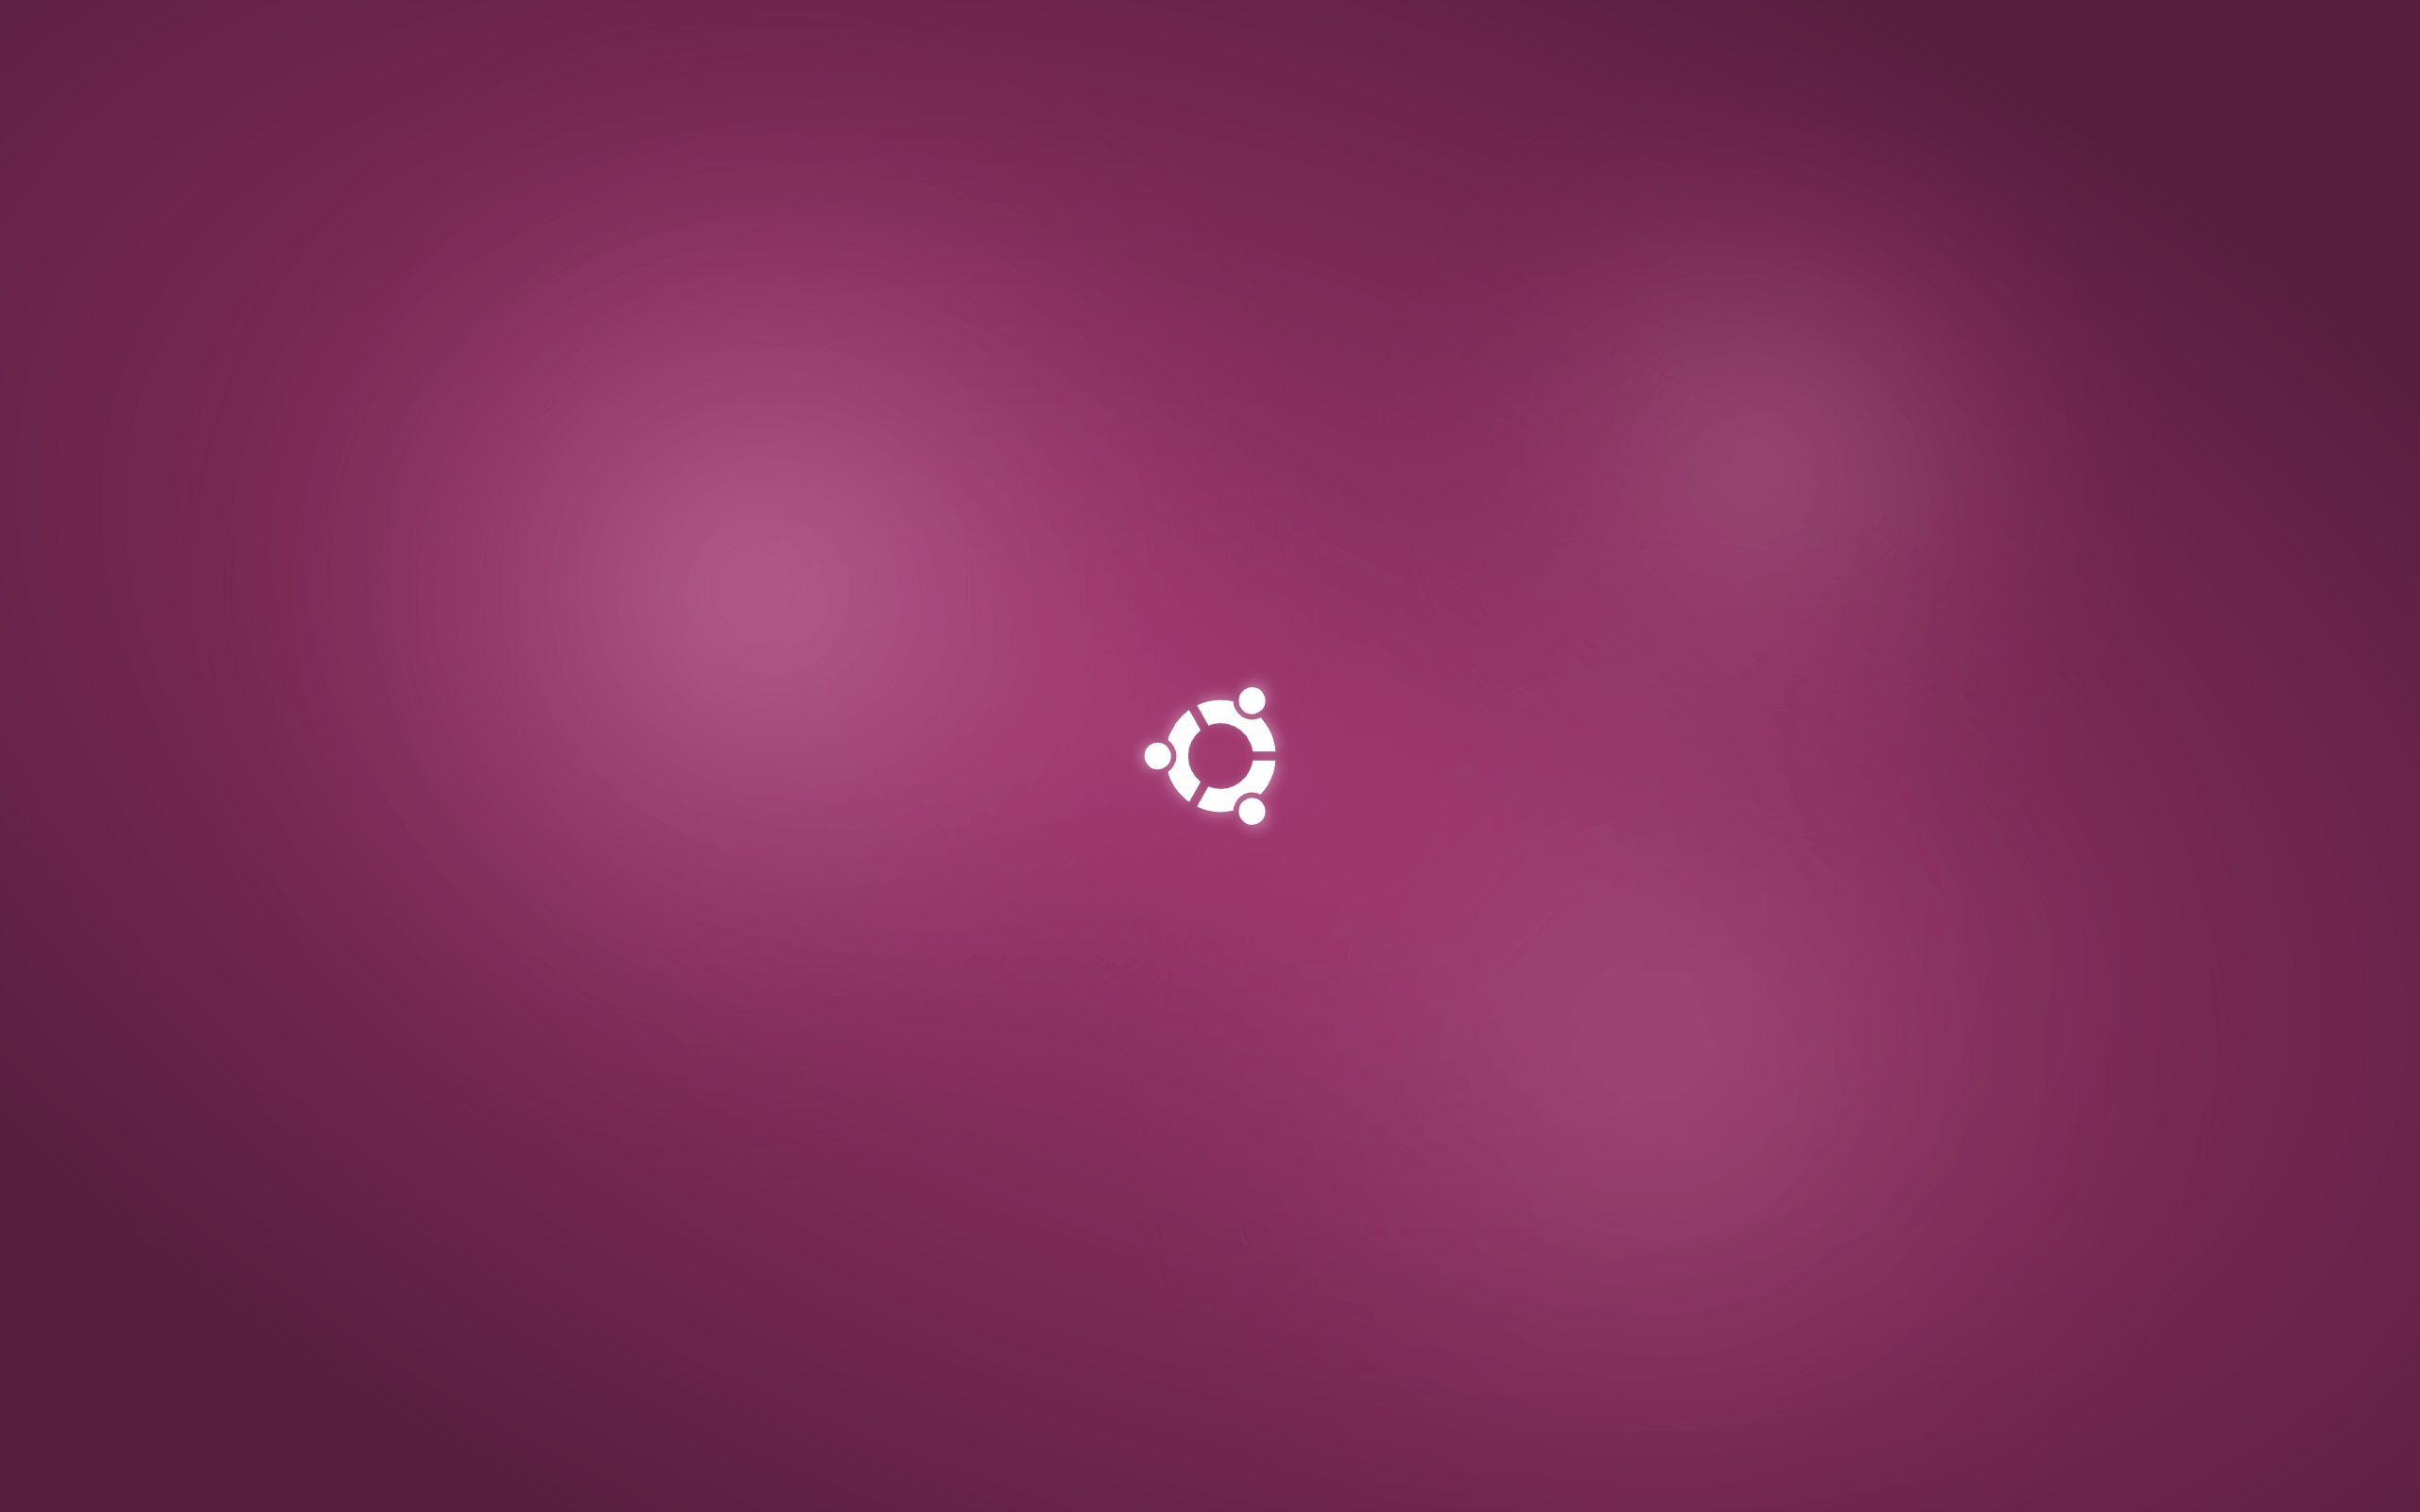 background wallpapers for ubuntu: Wallpapers For Ubuntu